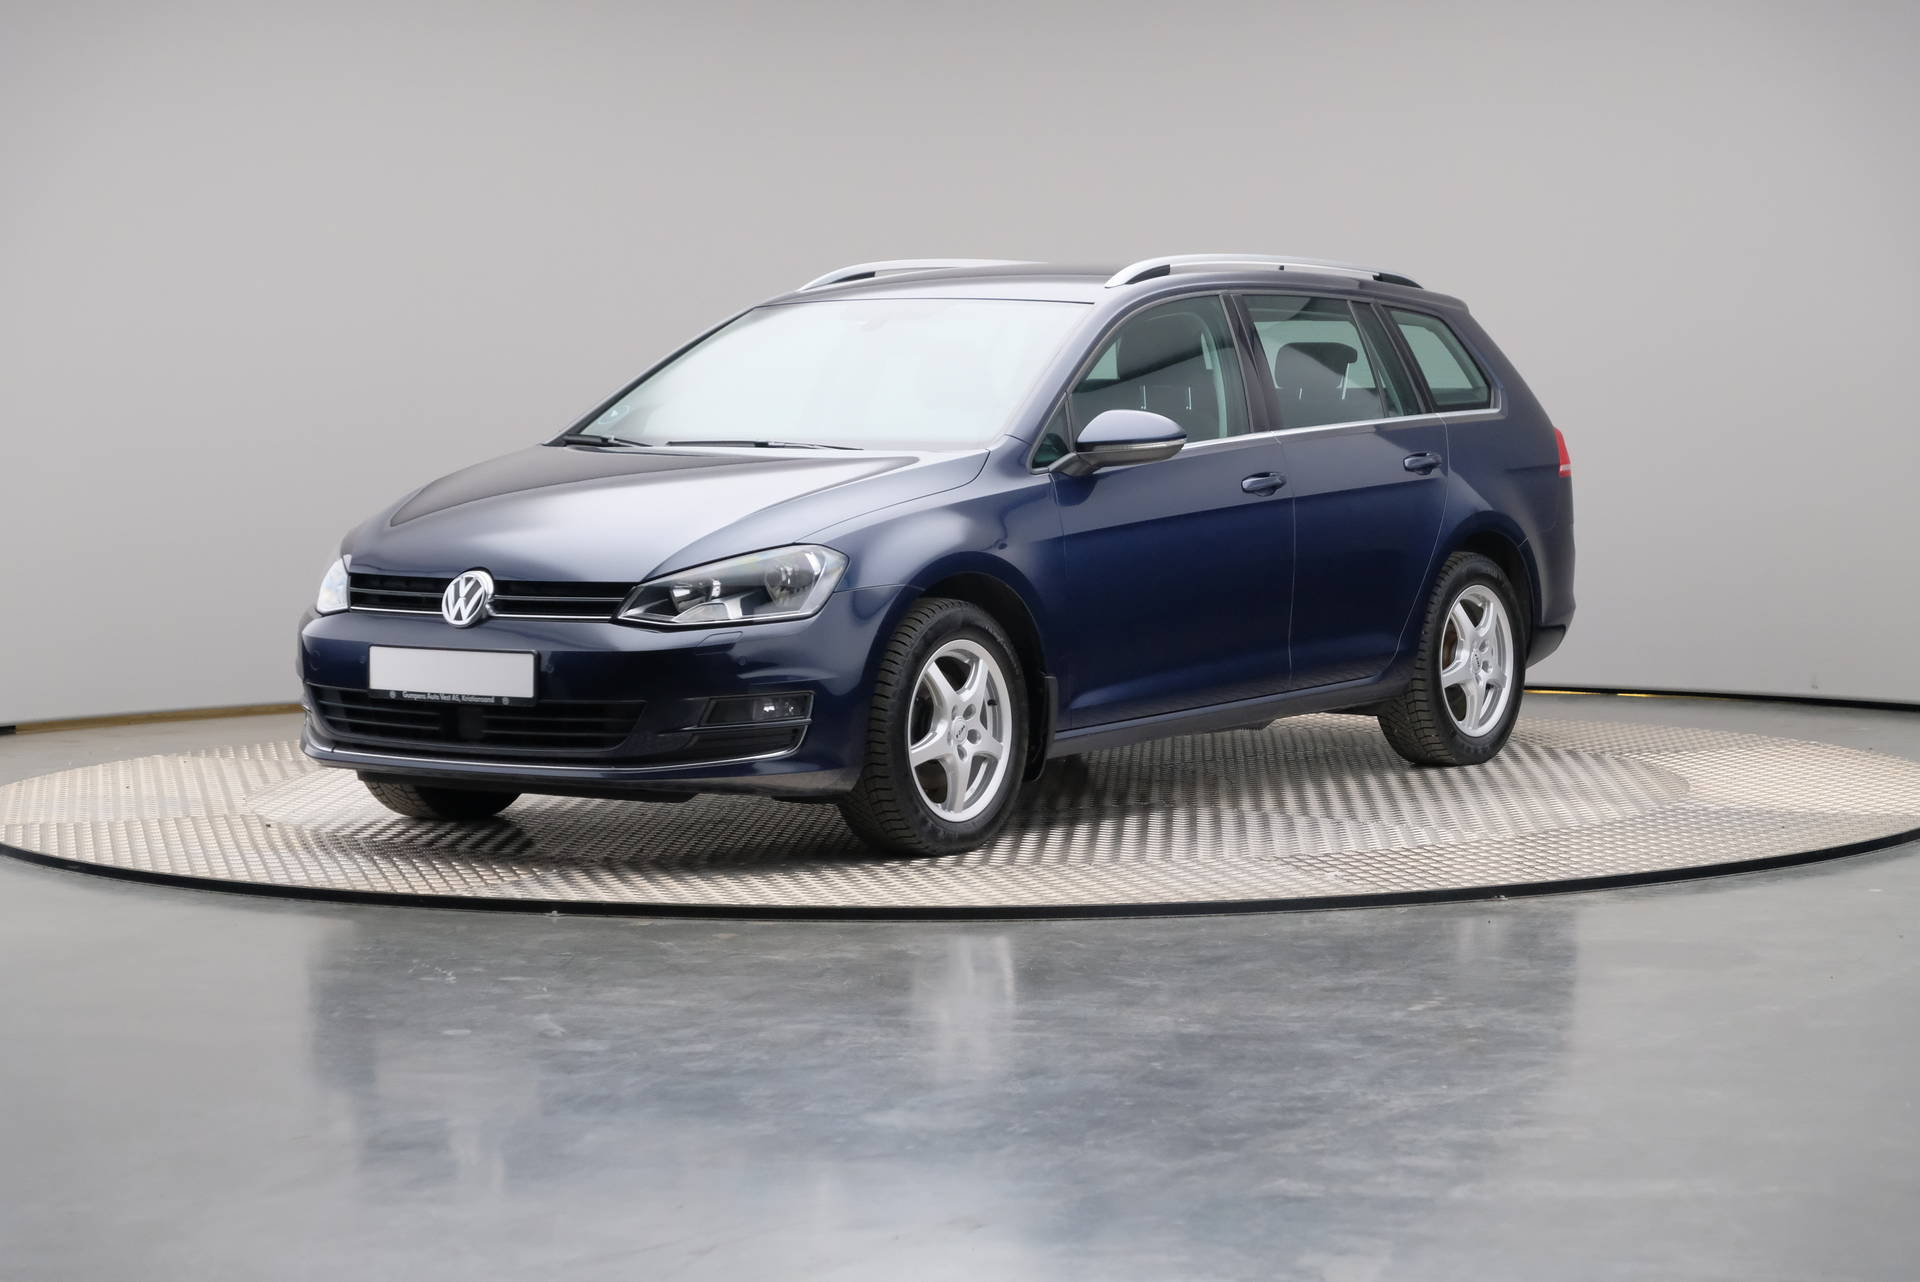 Volkswagen Golf Golf Variant 1.4 TSI BlueMotion Technology DSG, Highline, 360-image35